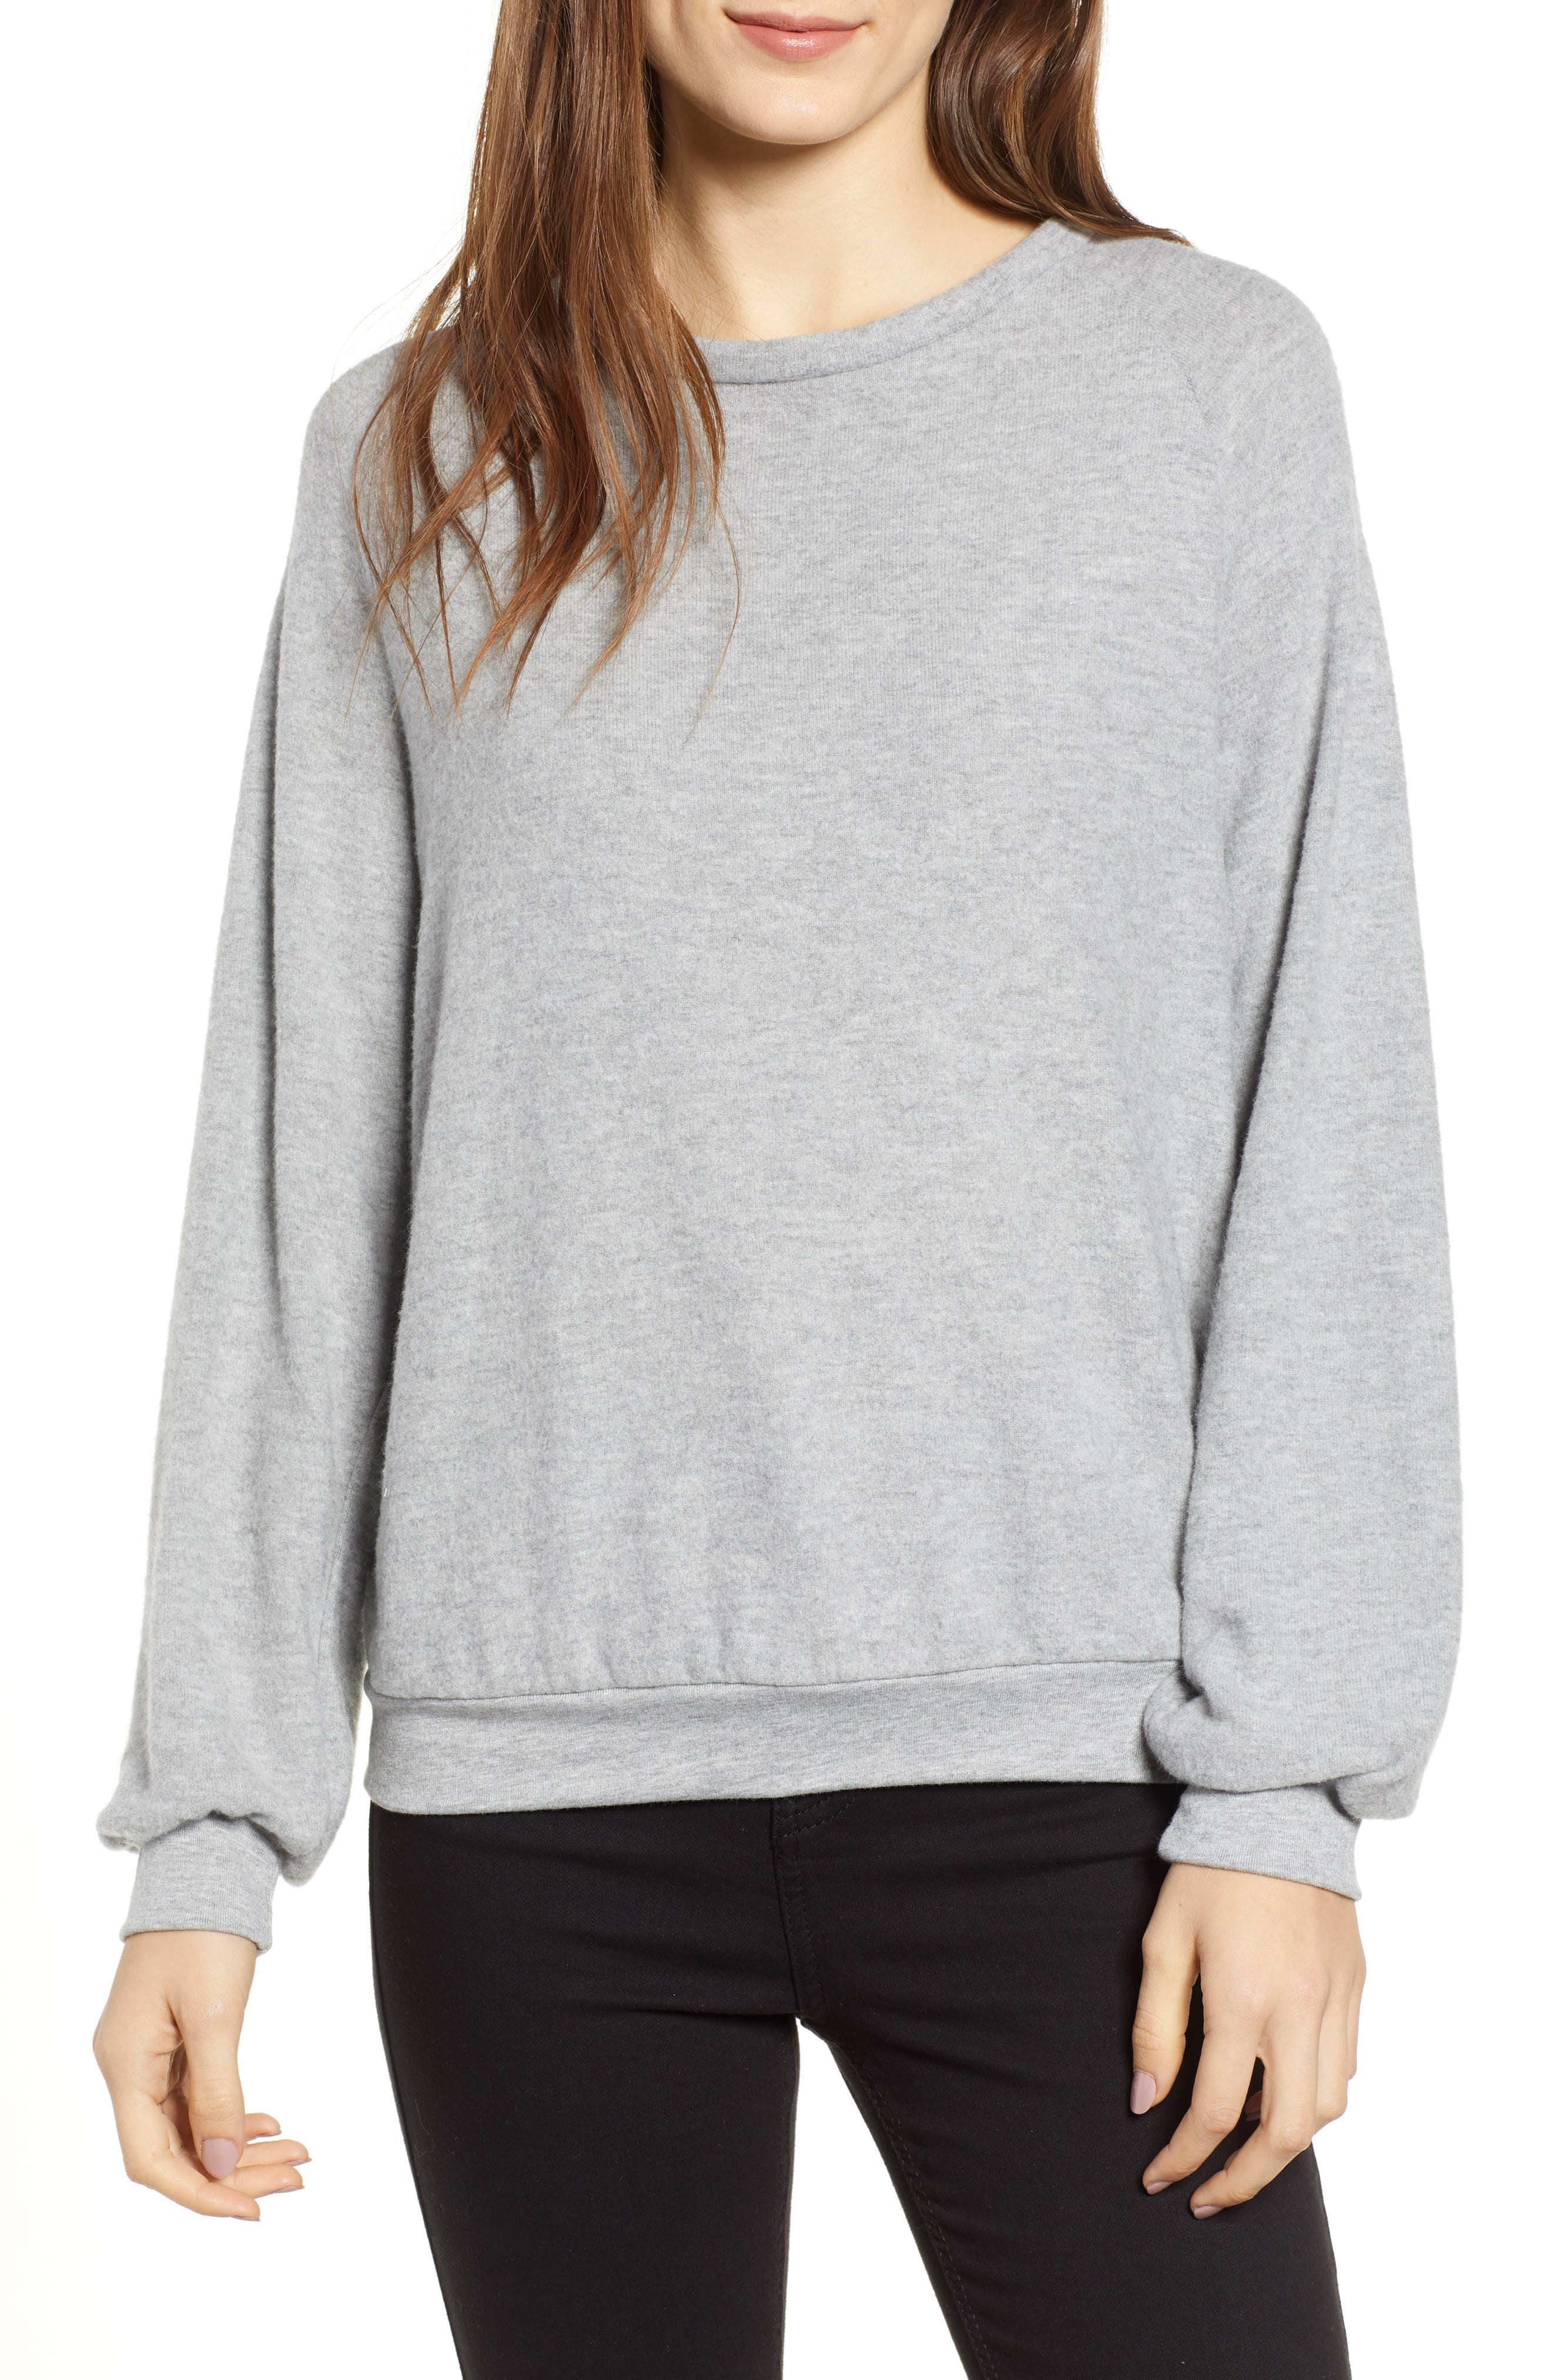 After Hours Open Back Sweatshirt,                             Main thumbnail 1, color,                             HEATHER GREY